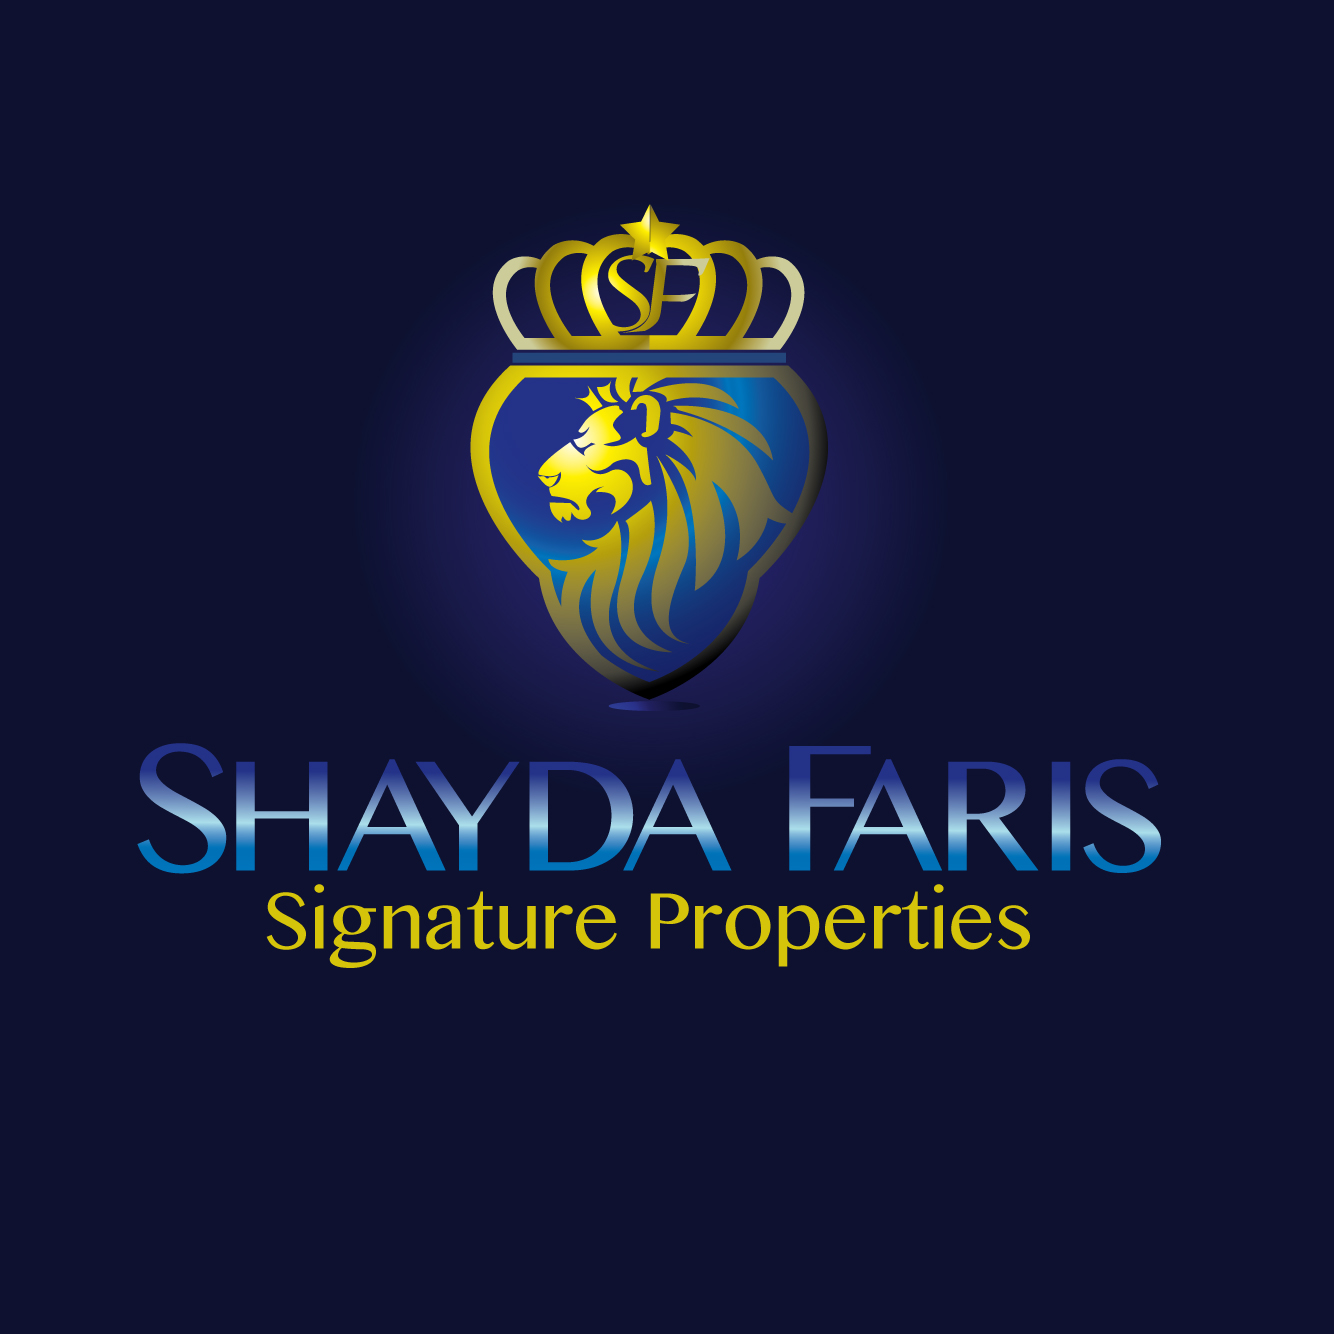 Logo Design by stormbighit - Entry No. 85 in the Logo Design Contest Unique Logo Design Wanted for Shayda Faris.